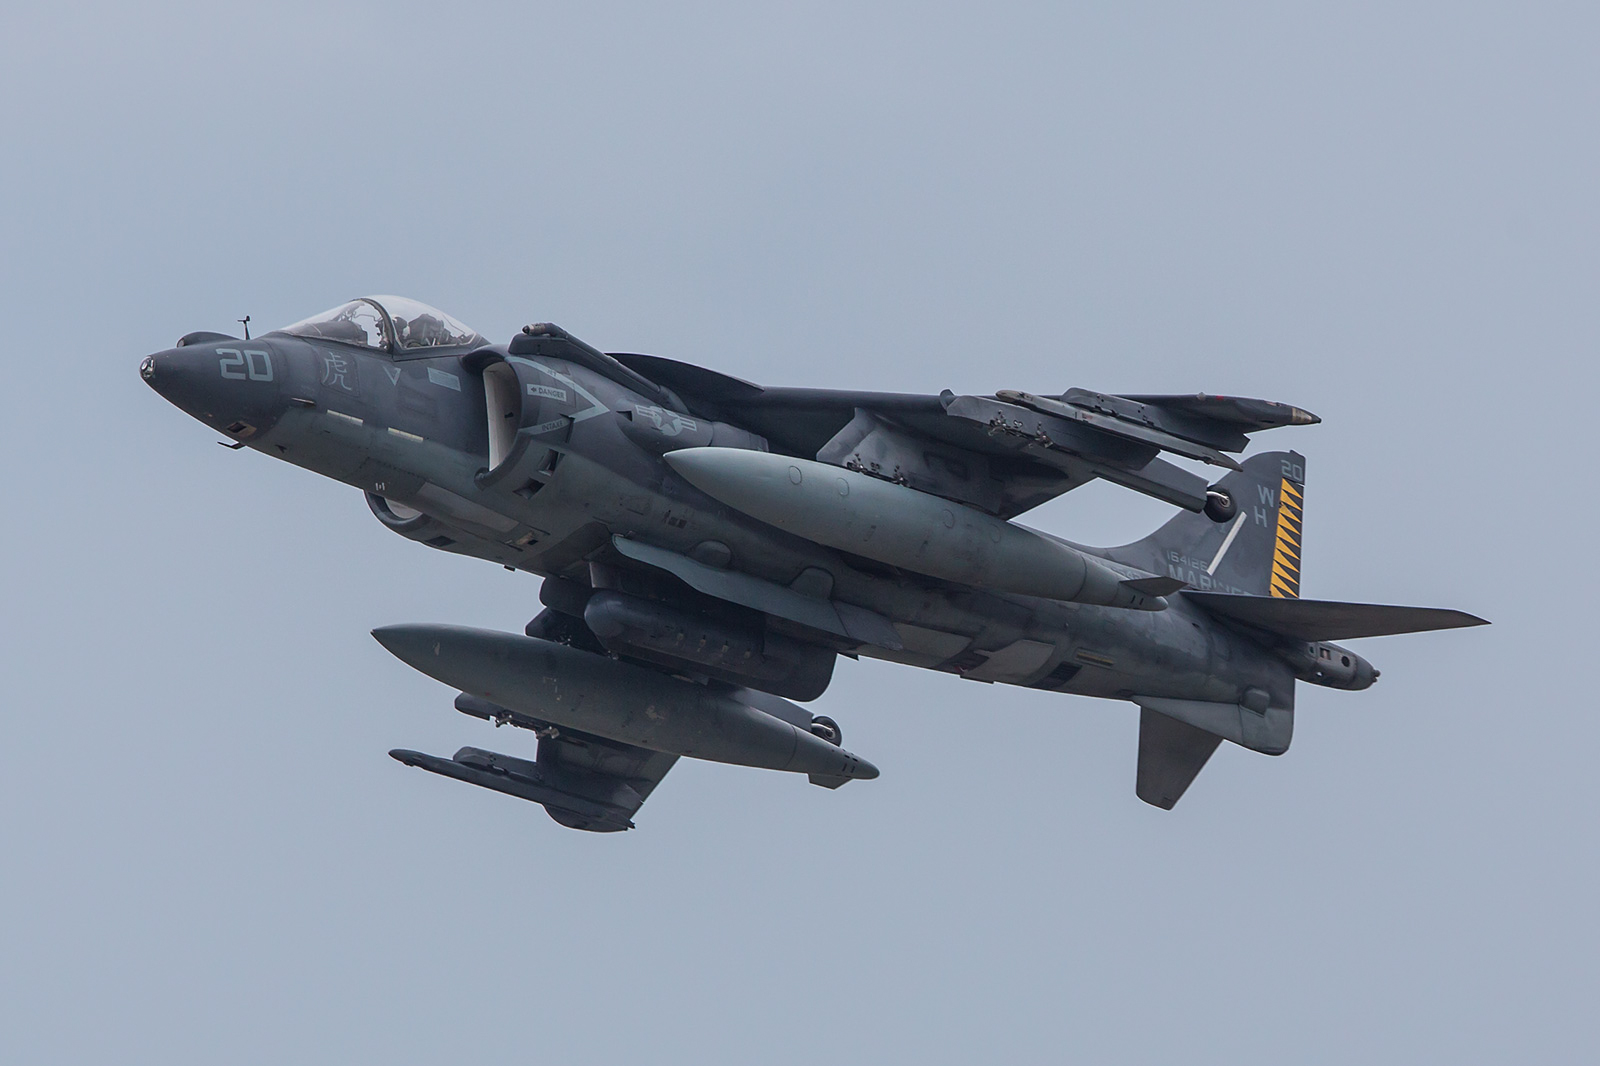 Auch einige AV-8B Harrier aus Cherry Point, North Carolina waren vor Ort.